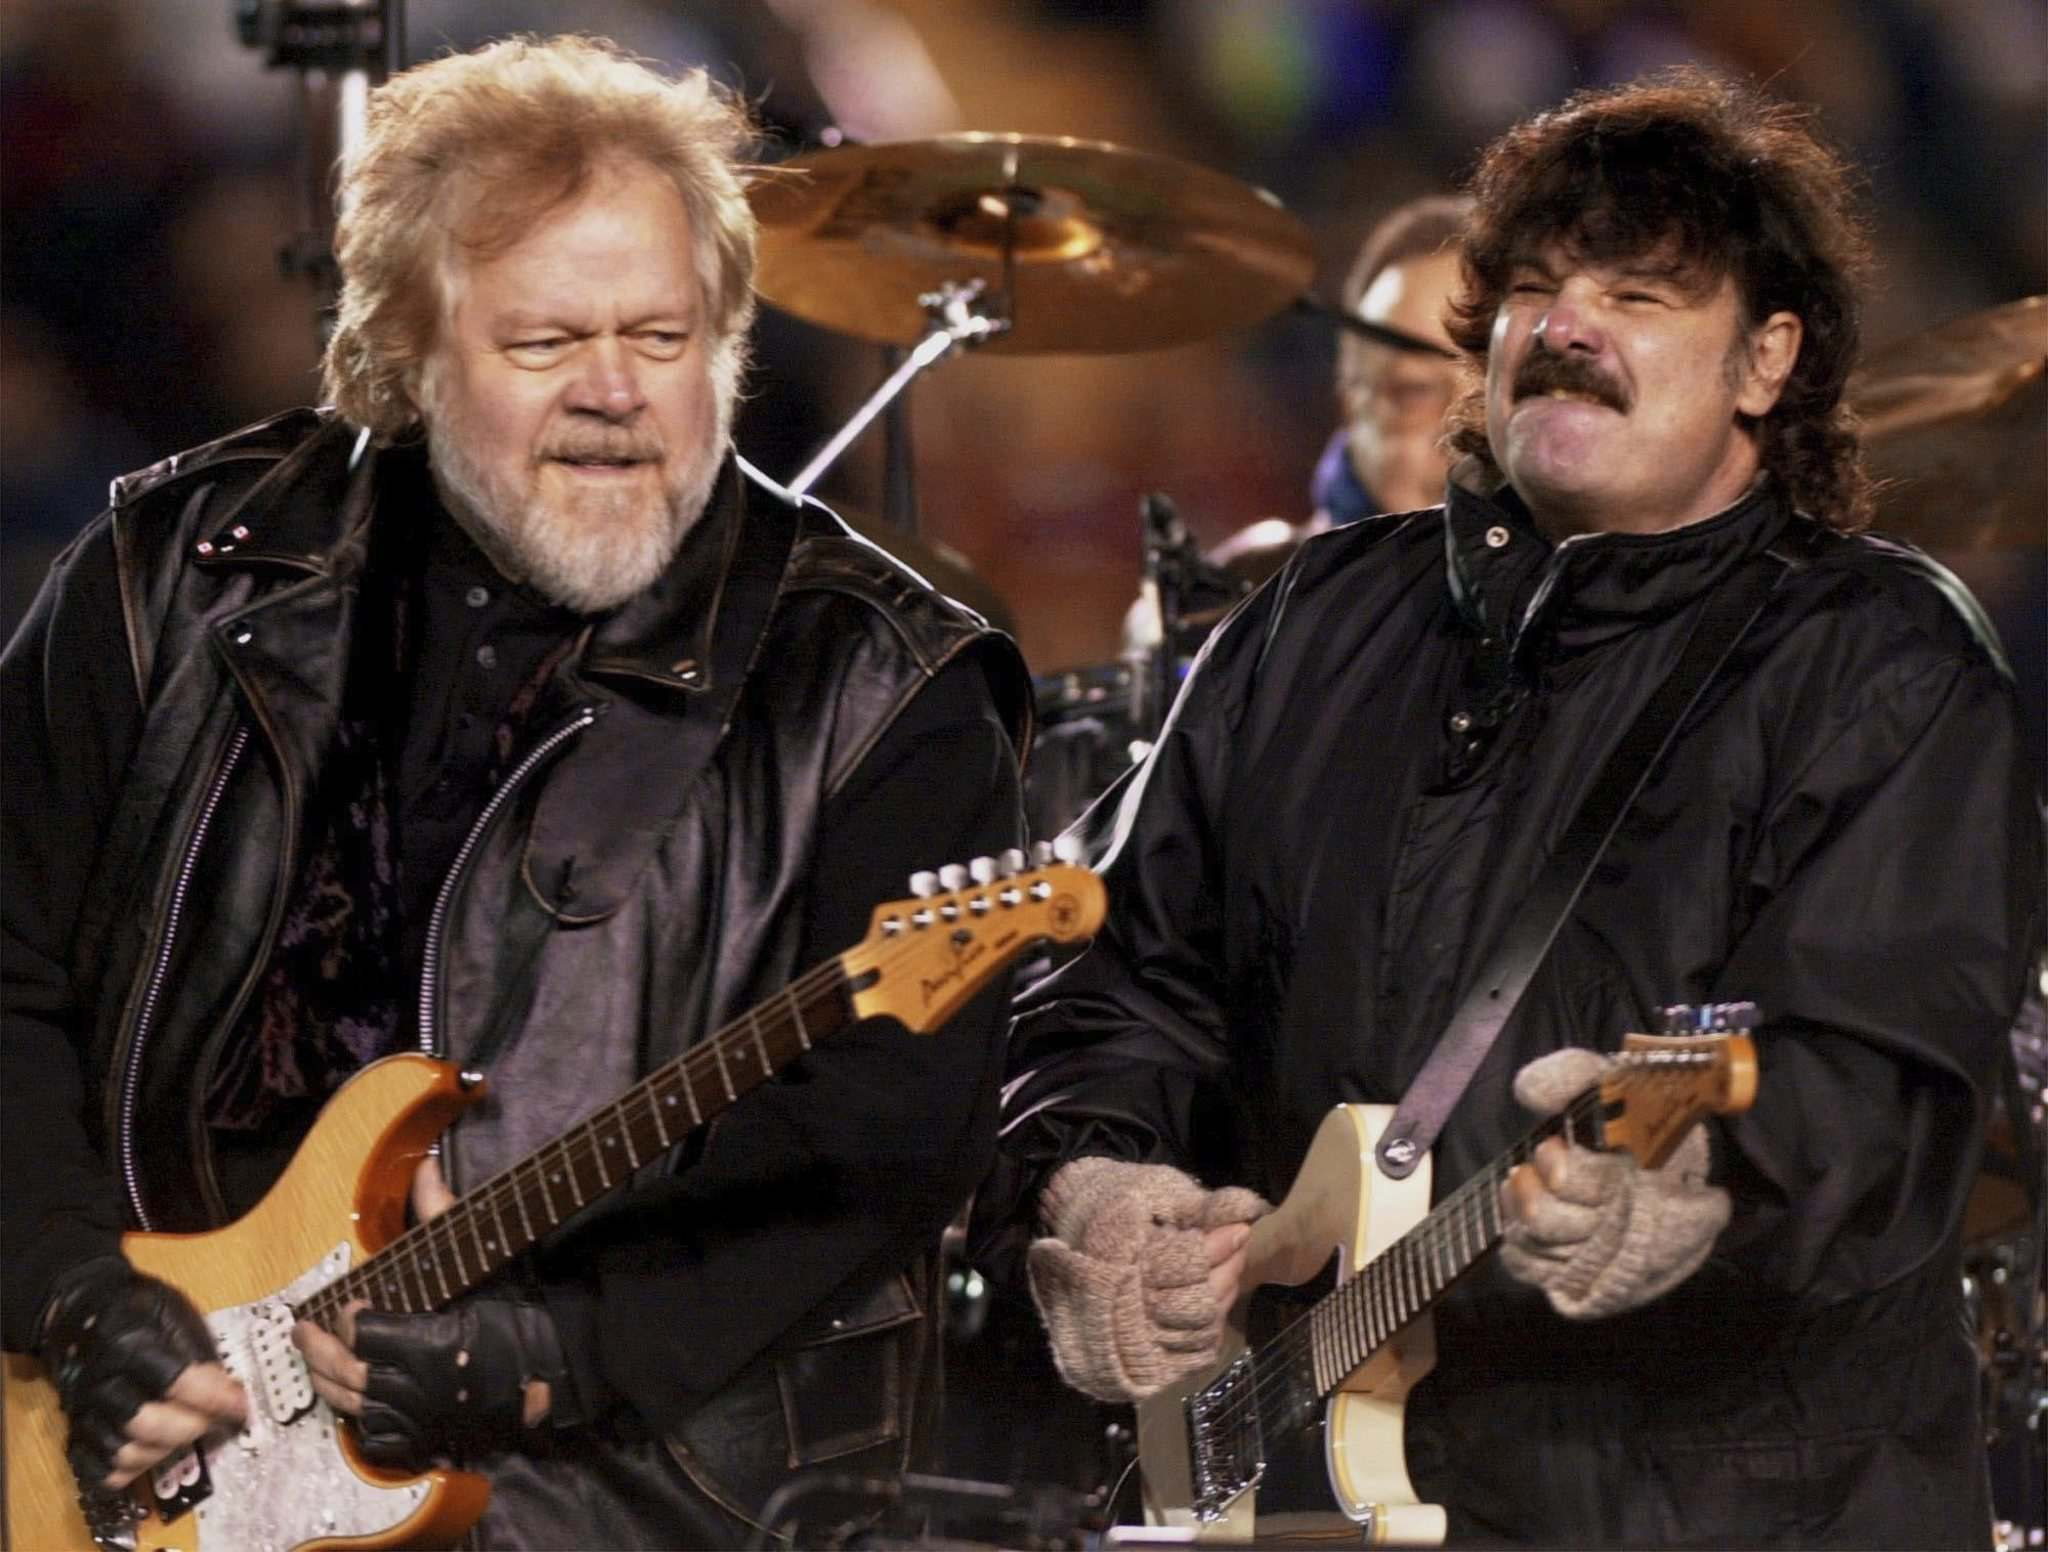 Former Guess Who mates Randy Bachman and Burton Cummings, famous for their on-again off-again musical partnership, will headline the free Unite 150 concert on June 27 in front of the Manitoba Legislative Building. (Aaron Harris/Canadian Press files)